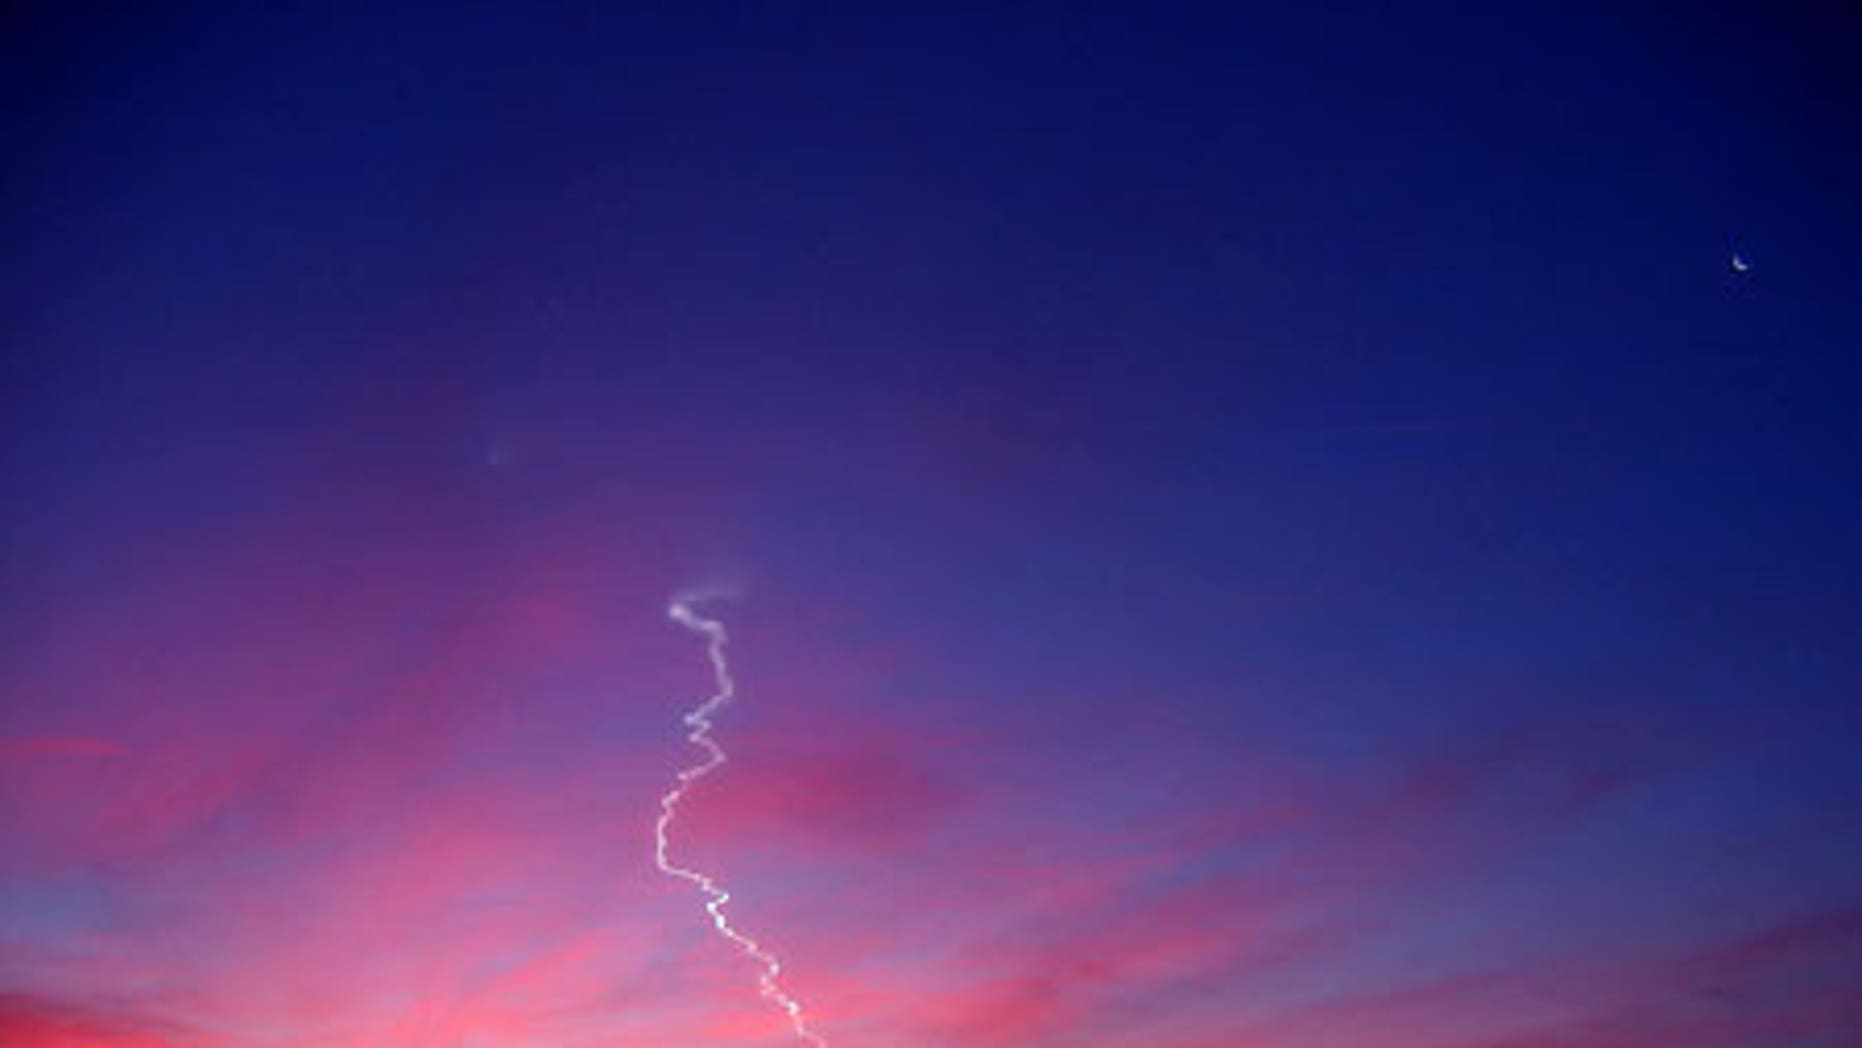 A Dec. 2006 Minotaur rocket launch from Wallops Island, Va., as photographed by Geoff Chester in Alexandria, Va.